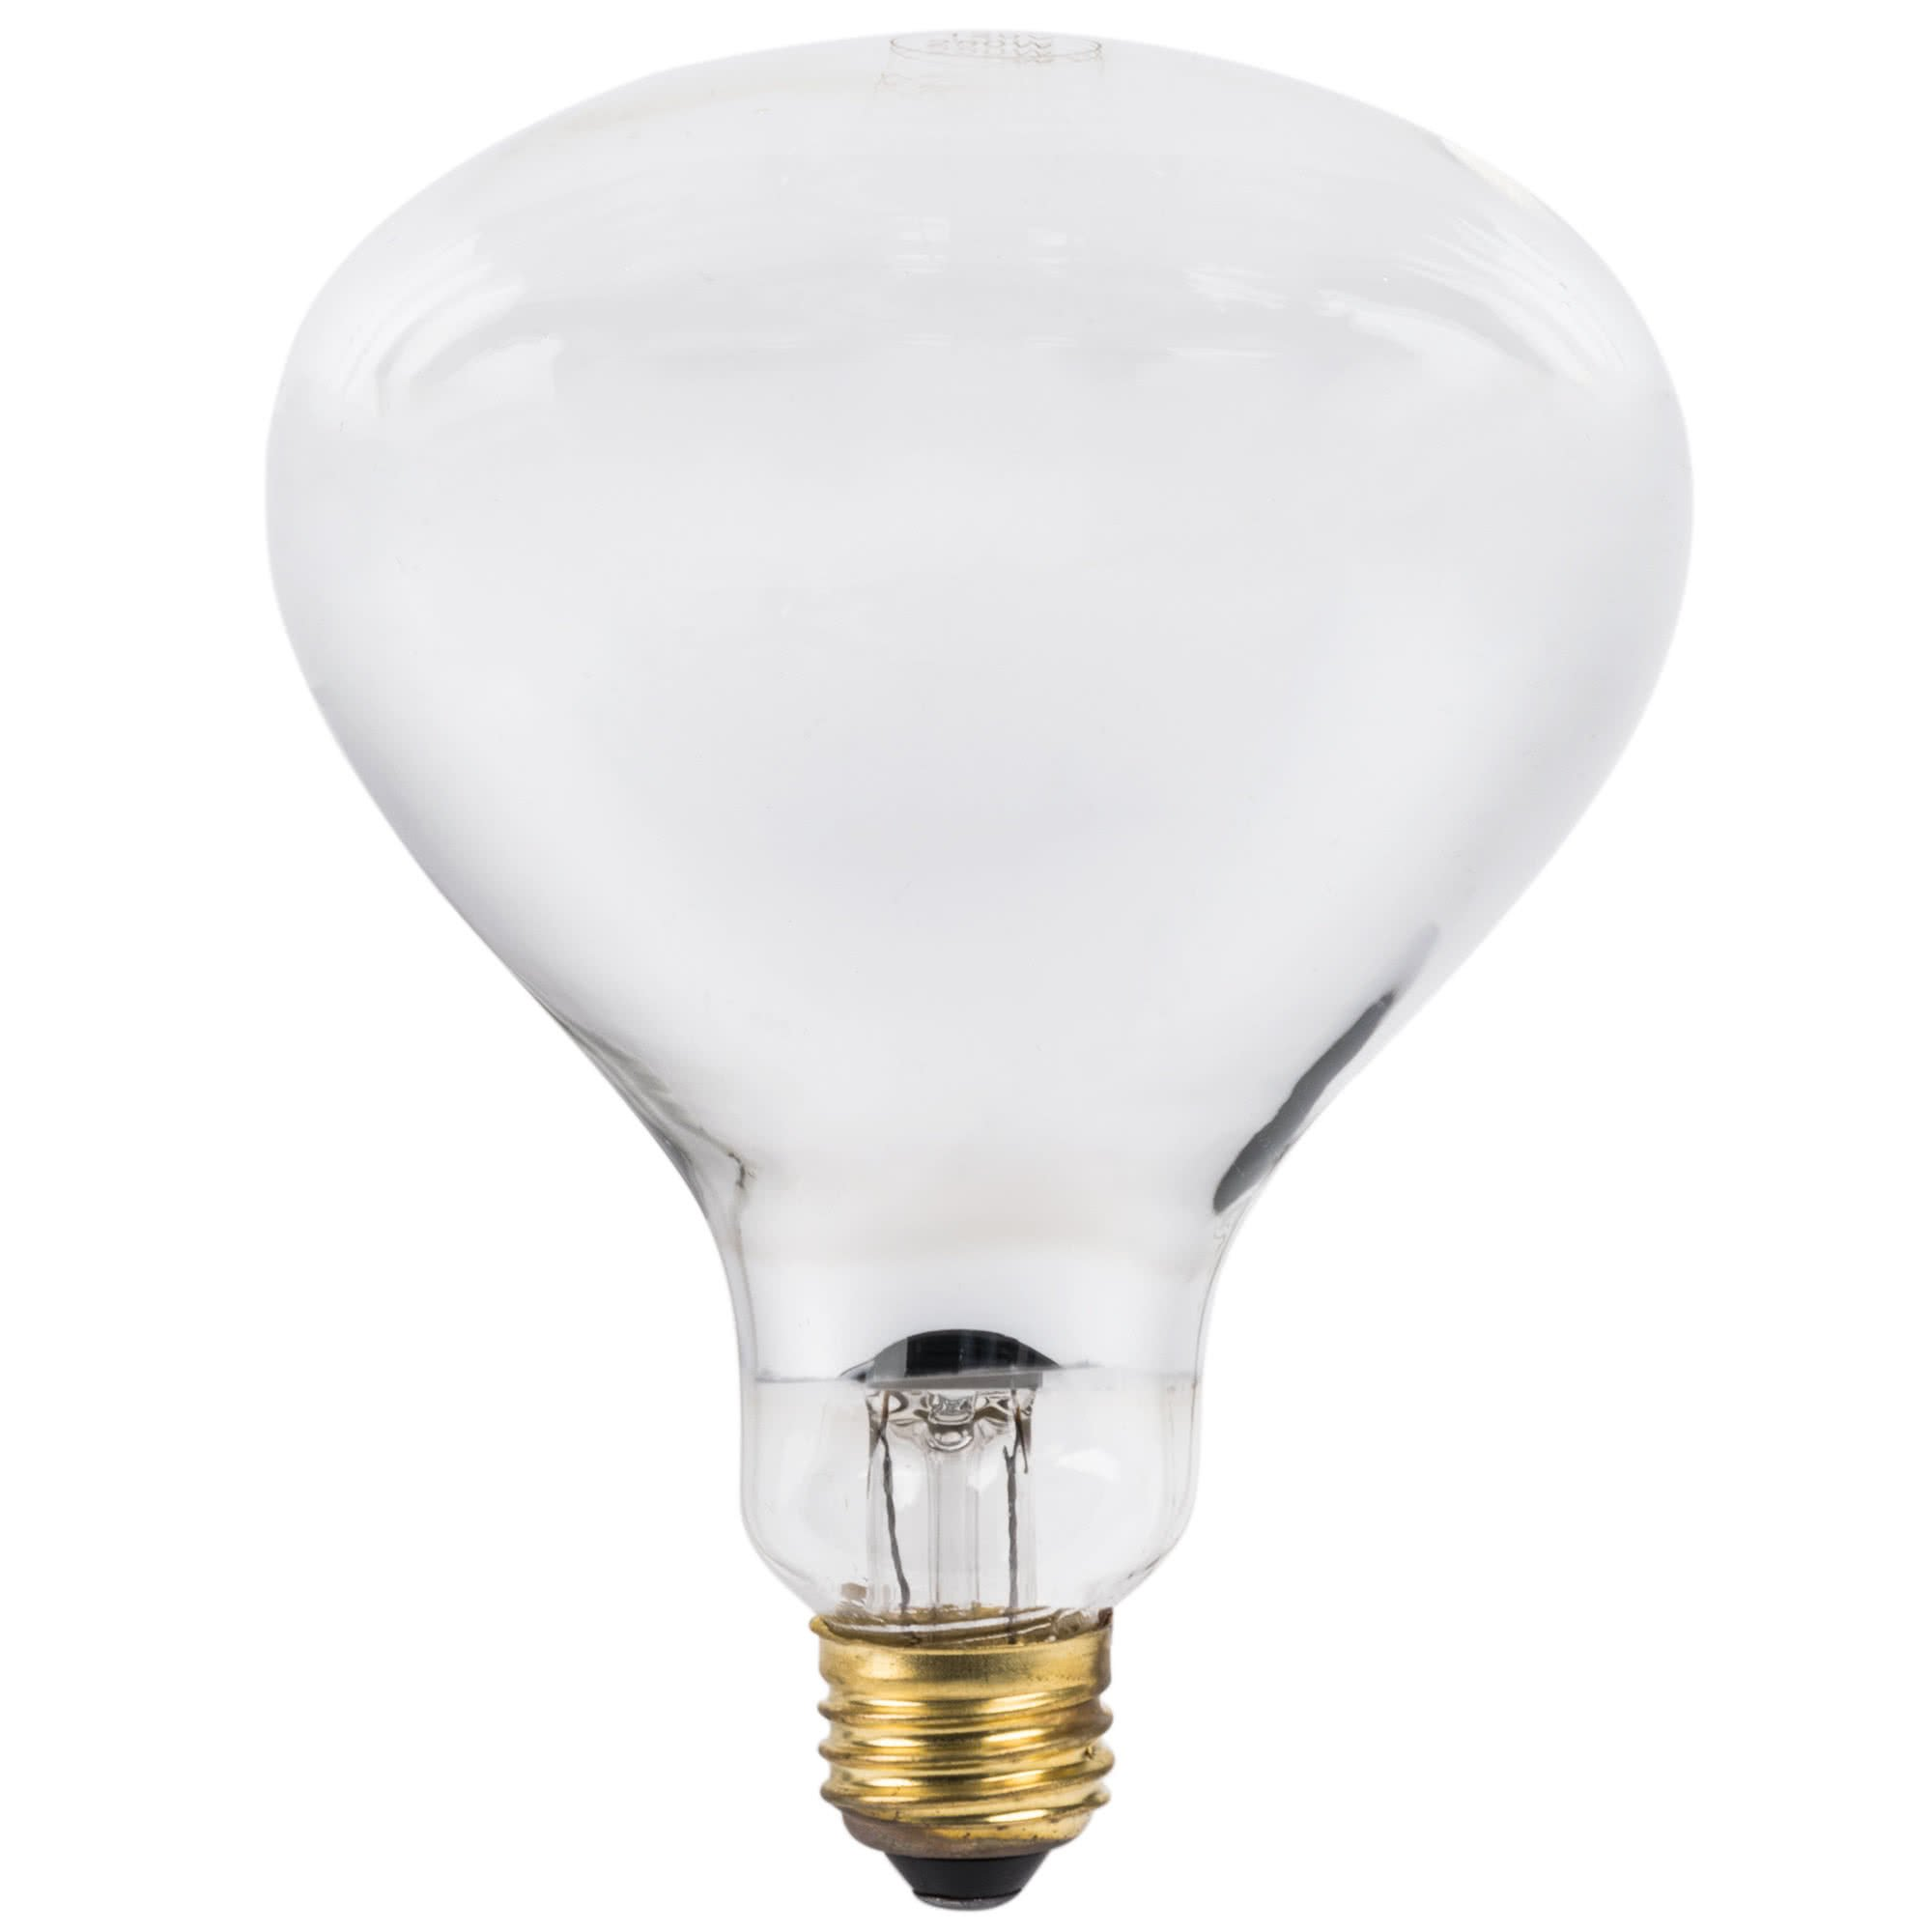 TableTop King 250 Watt Infrared Heat Lamp Light Bulb by TableTop King